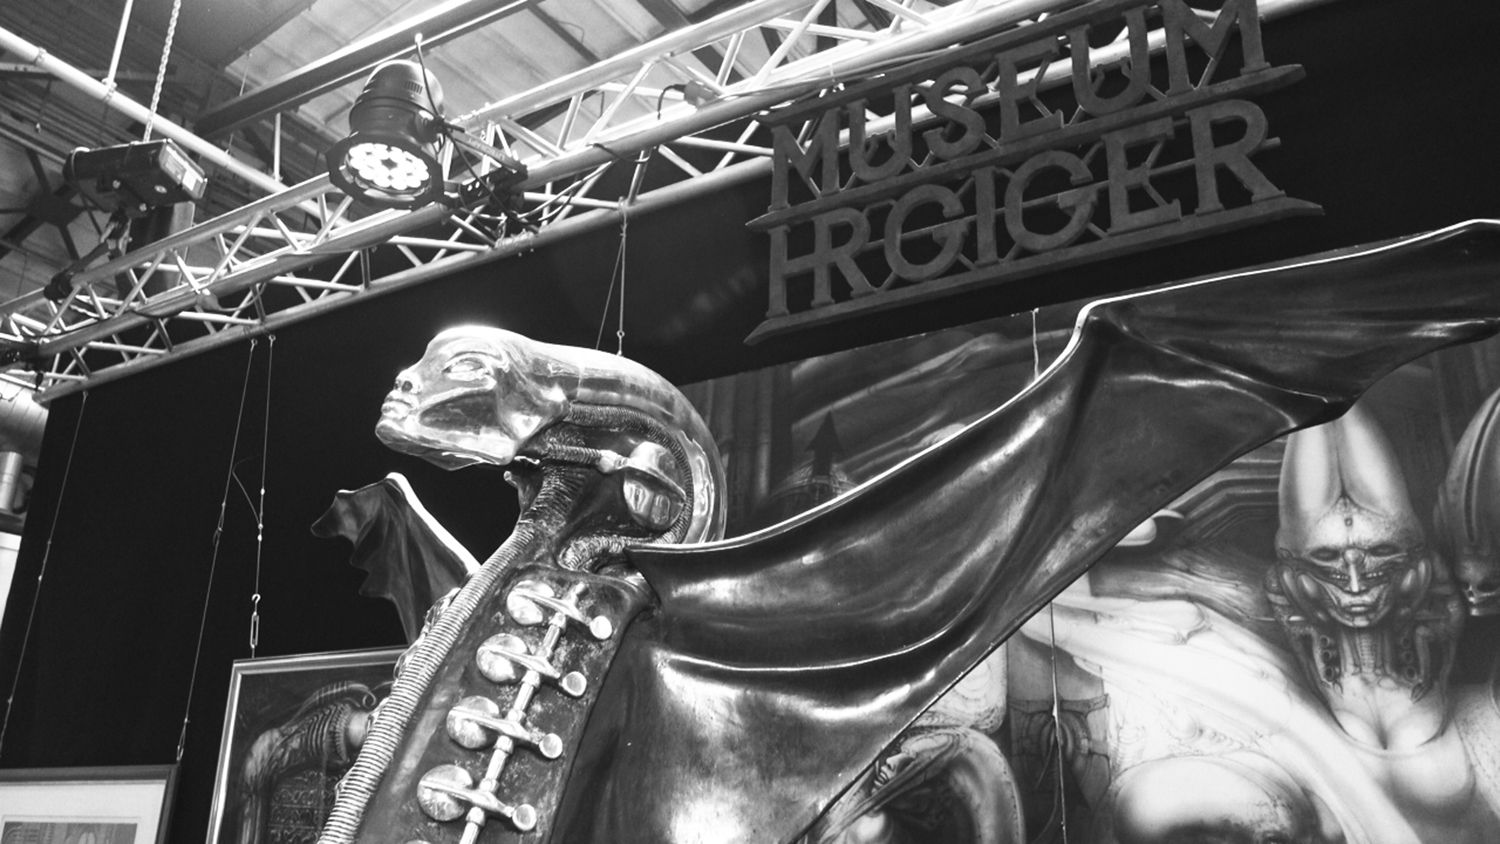 necronomicon sculpture, hr giger museum berlin tattoo convention